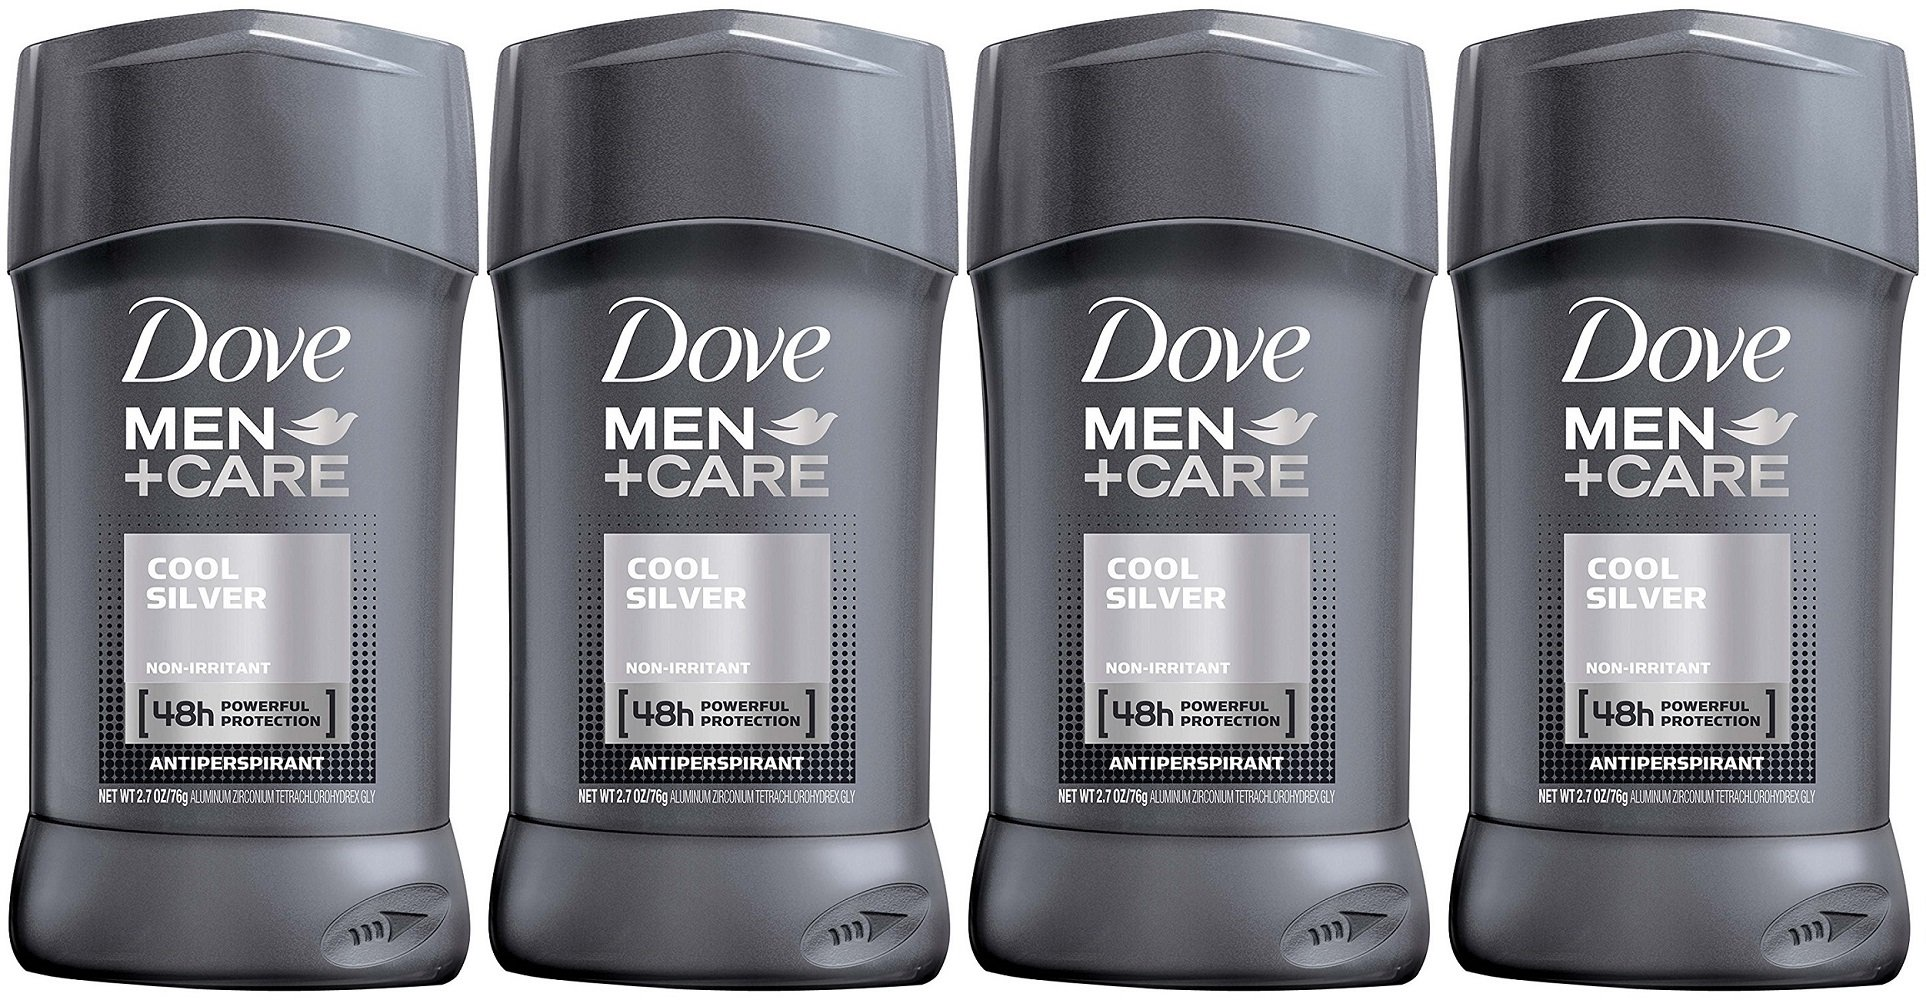 dove cool silver deodorant review